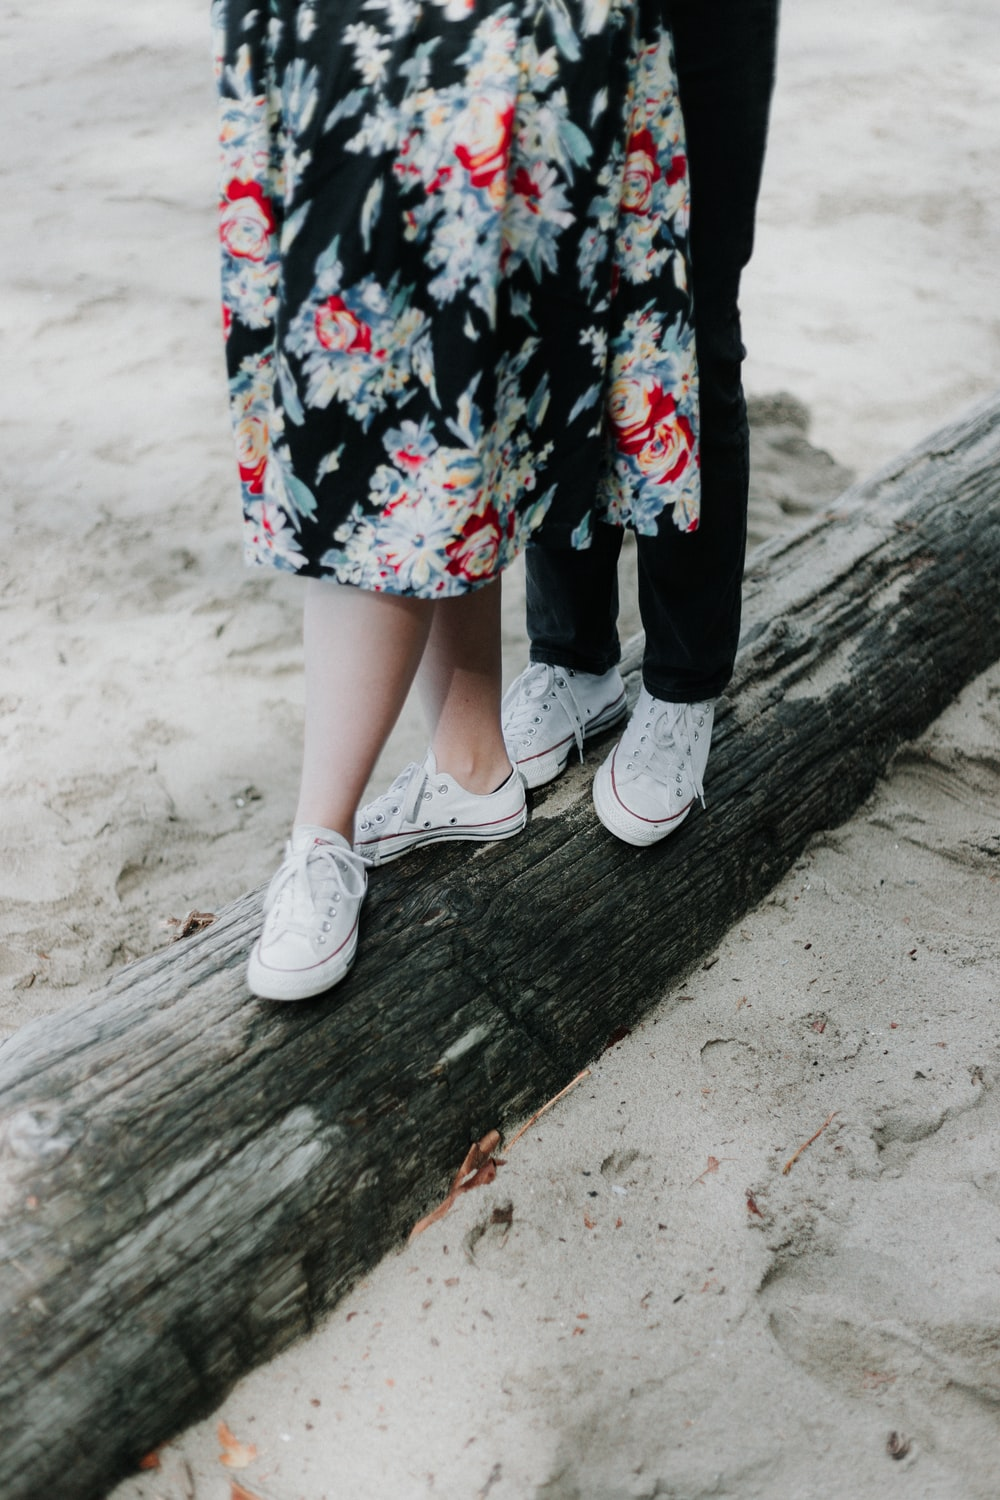 two pairs of white low-top shoes